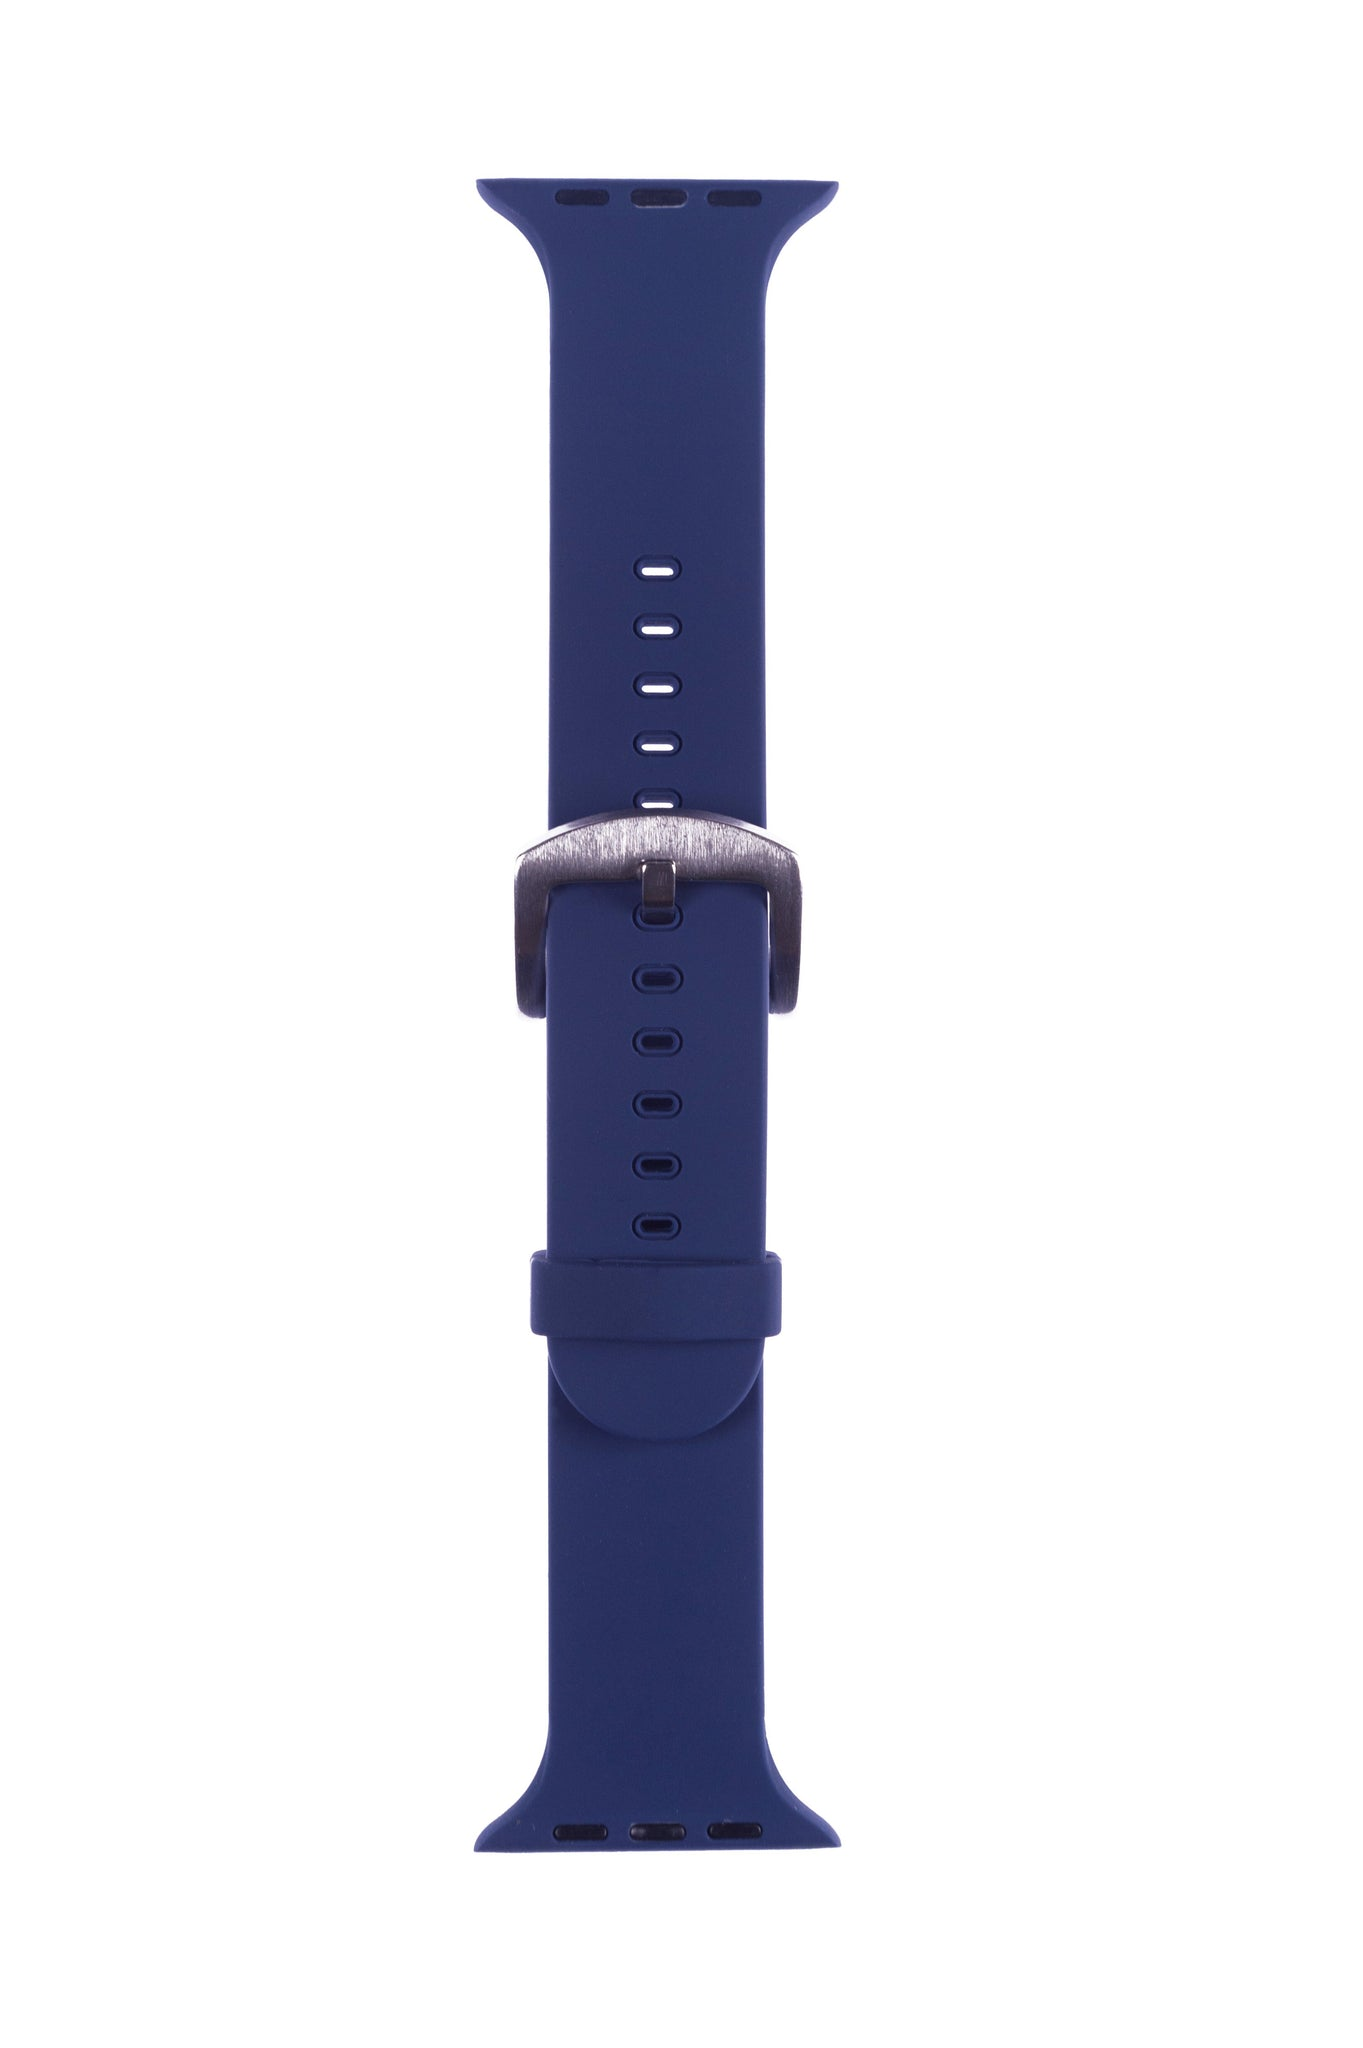 NintyOne Apple watch Strap - Navy Blue